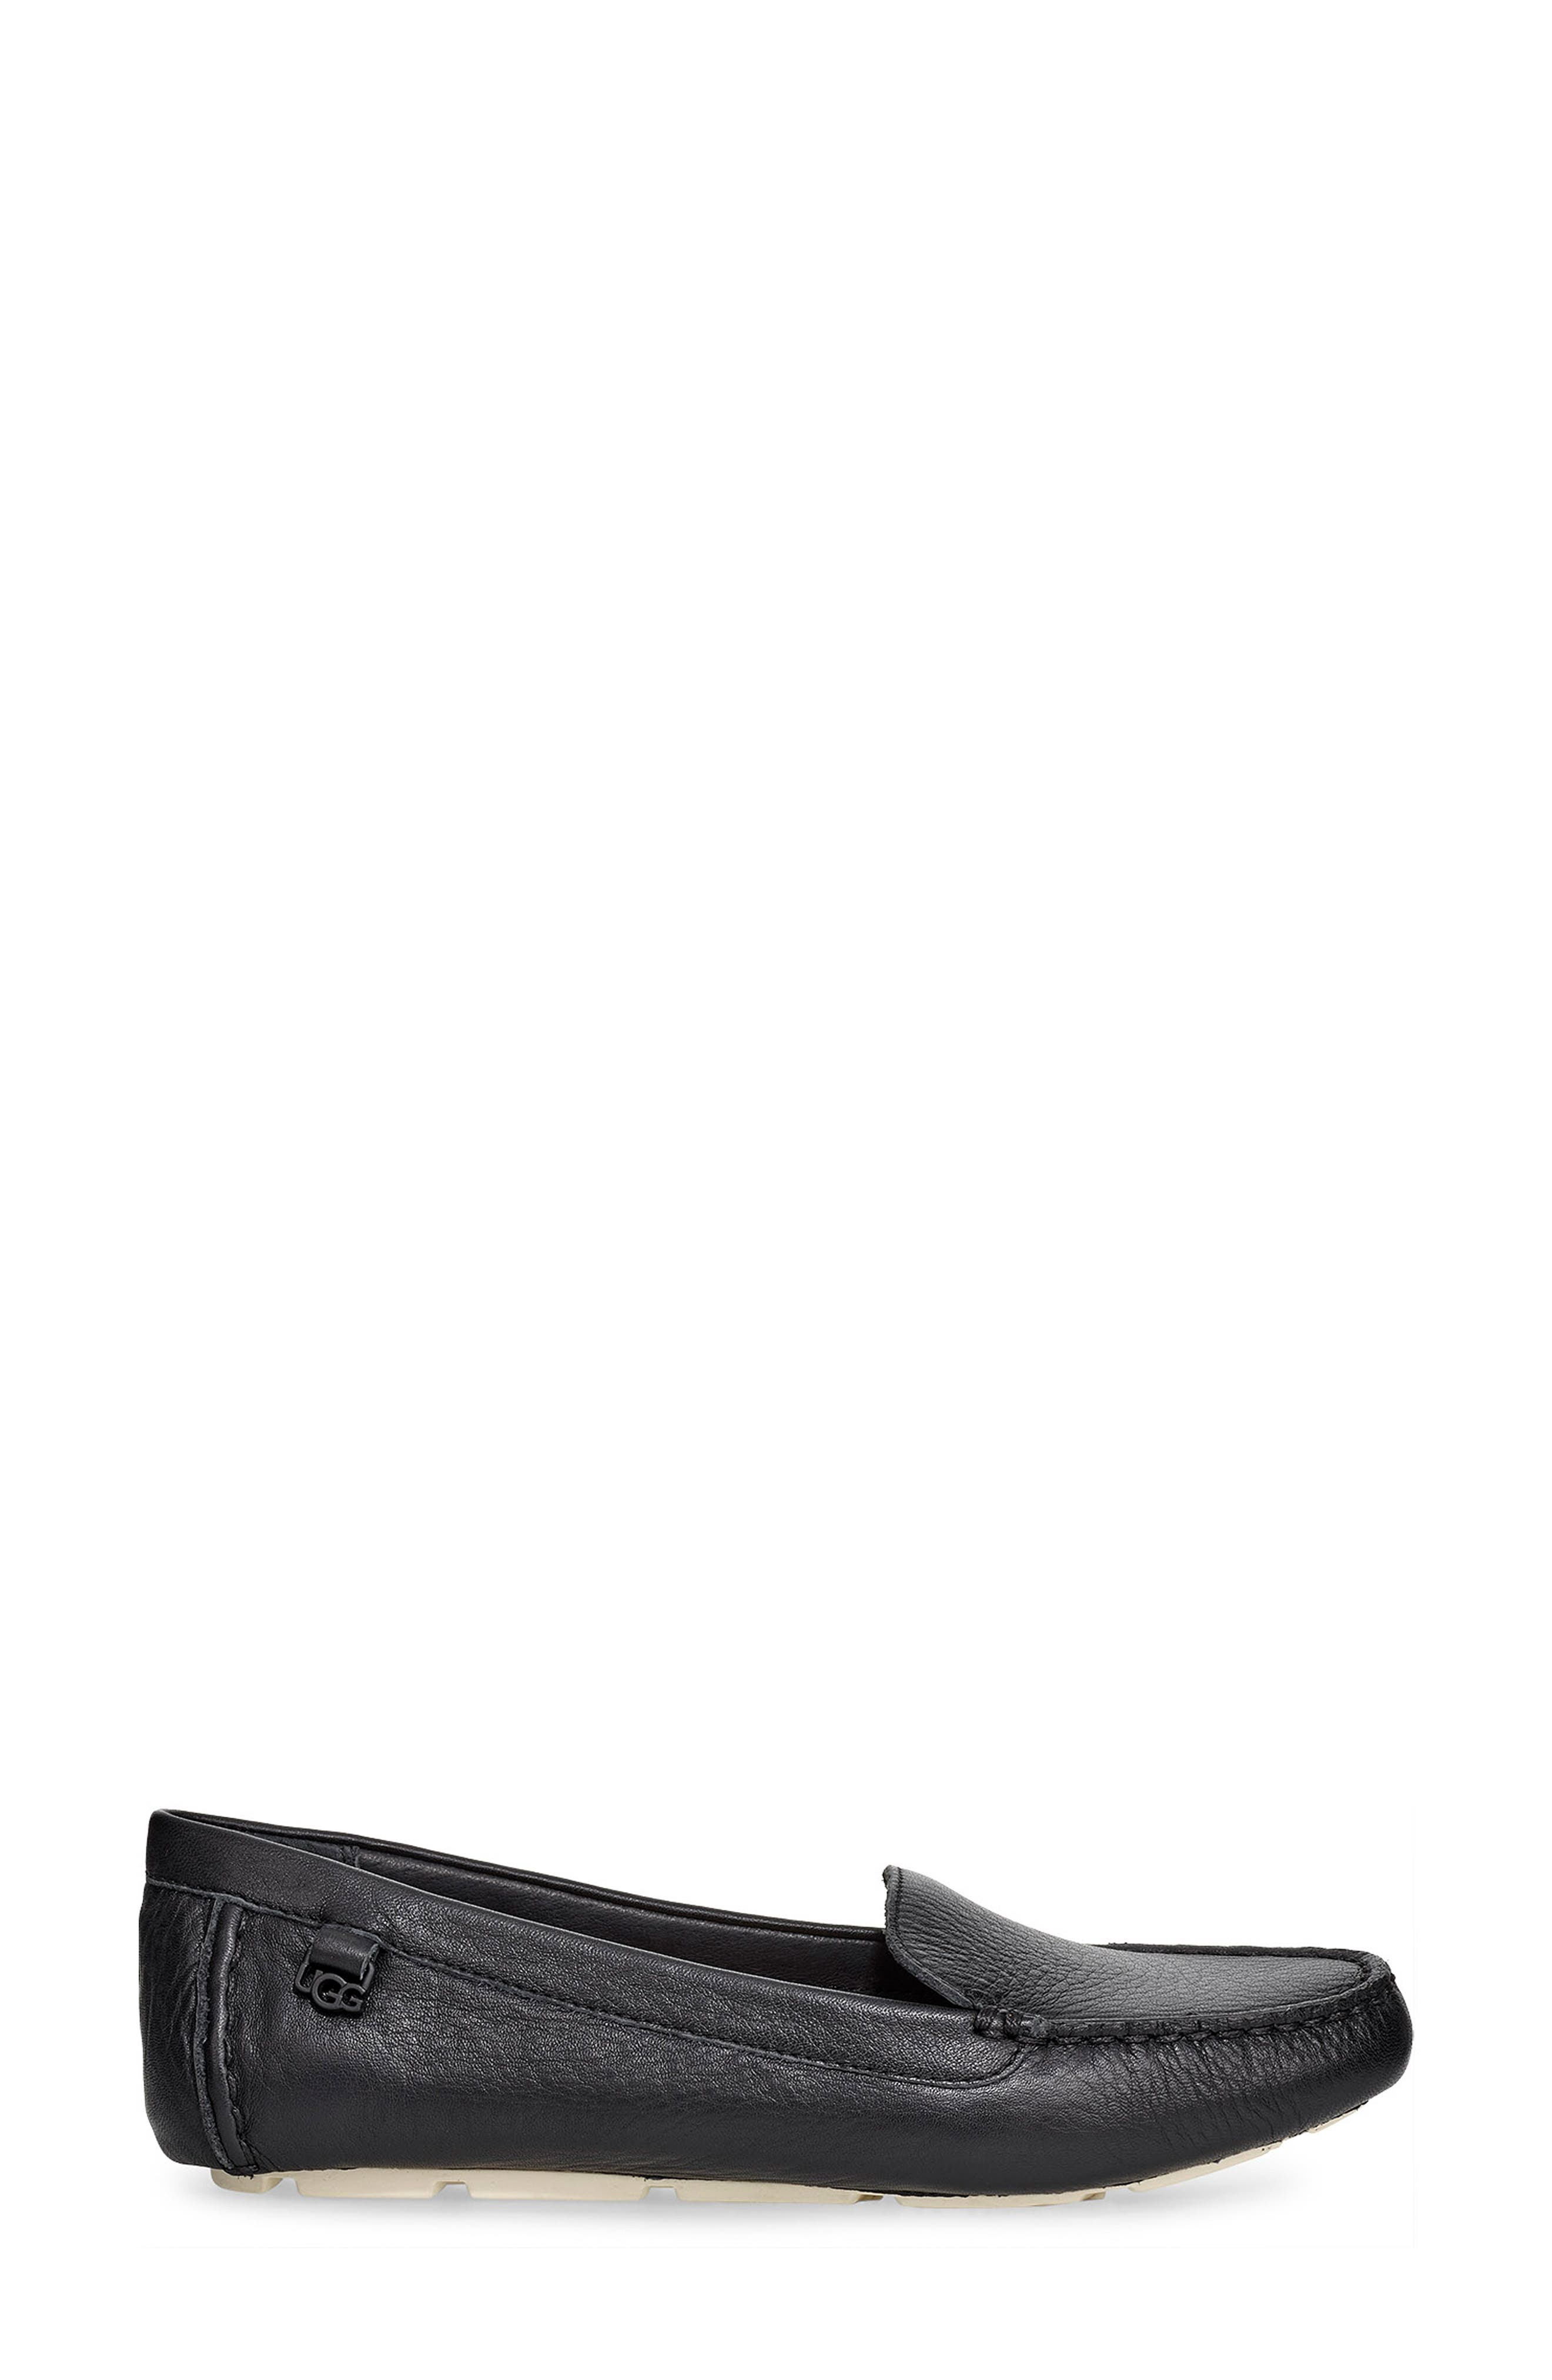 UGG<SUP>®</SUP>, Flores Driving Loafer, Alternate thumbnail 3, color, BLACK LEATHER